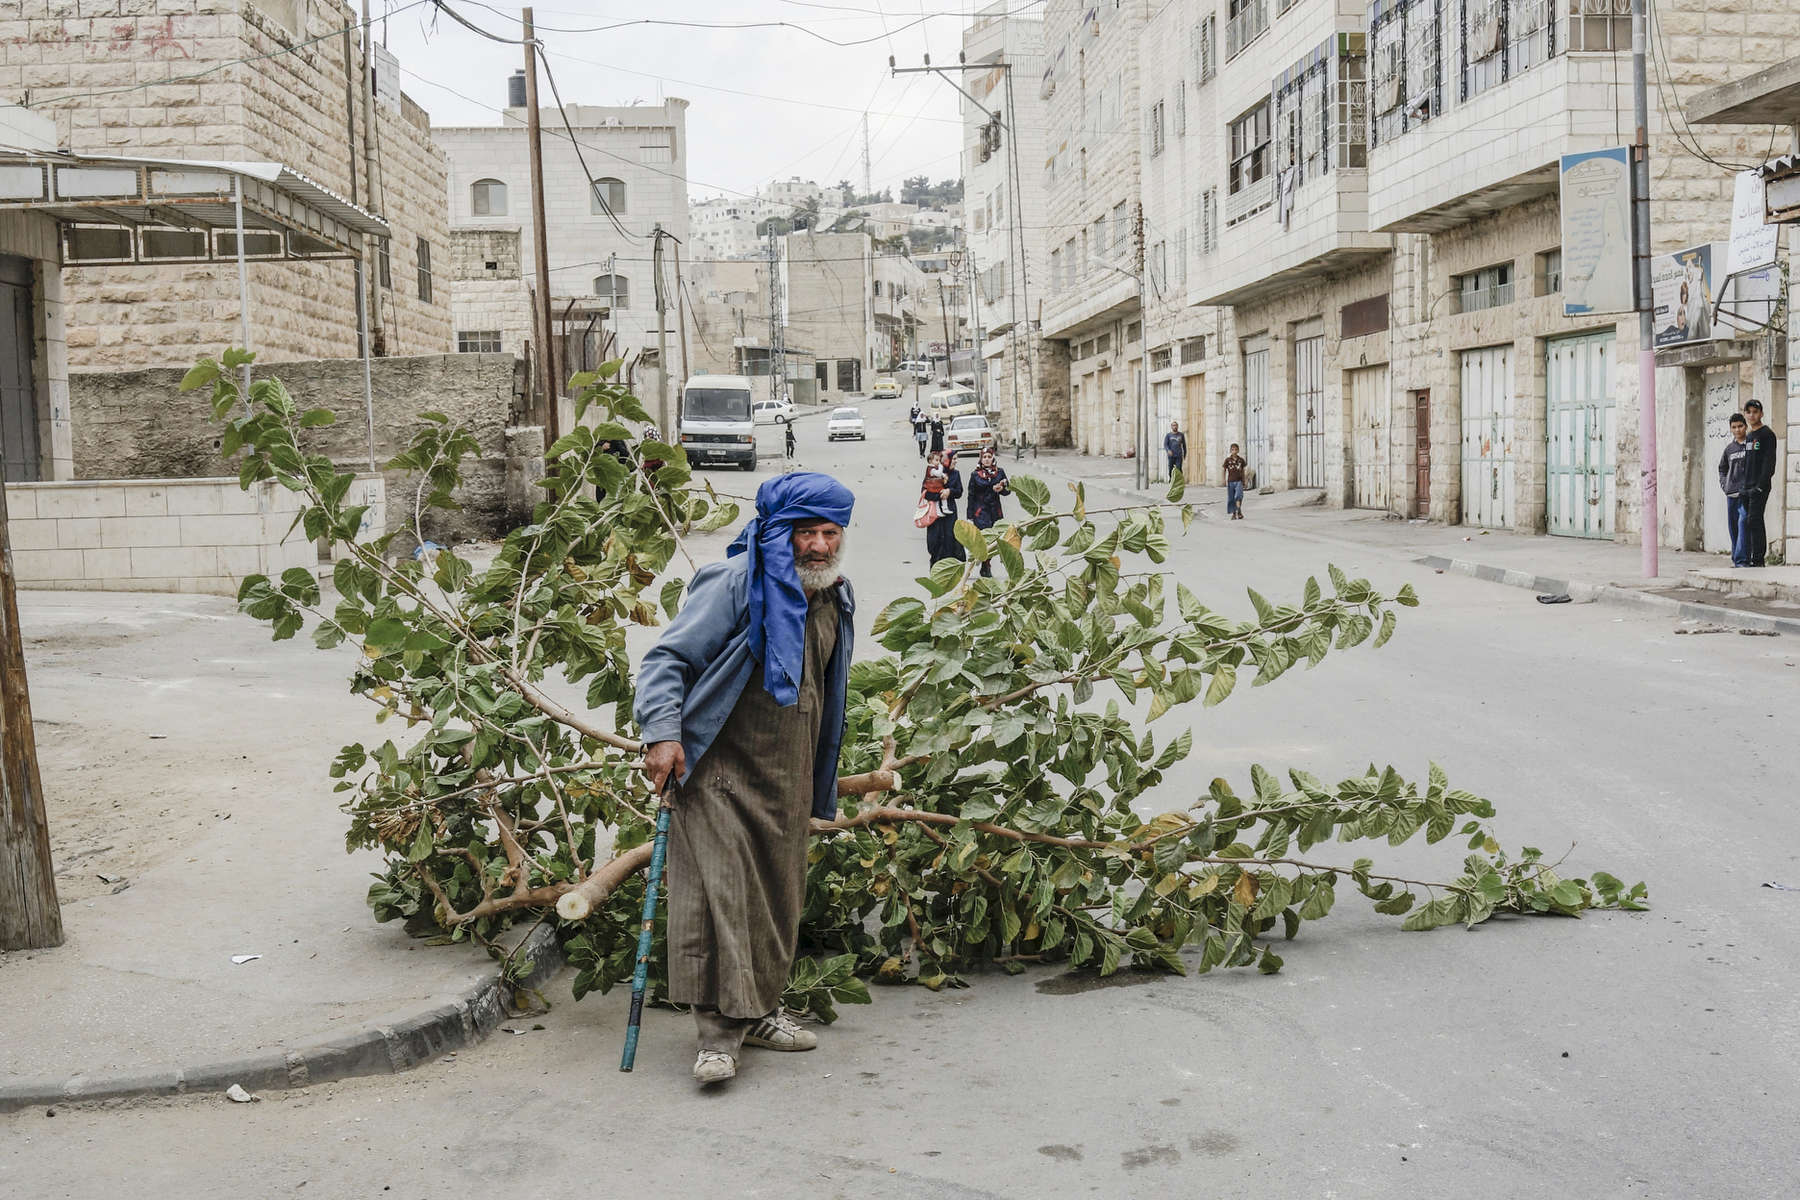 2013.  Hebron.  Palestinian Territories/The West Bank. A man drags an olive tree through a clash between school children and Israeli soldiers.